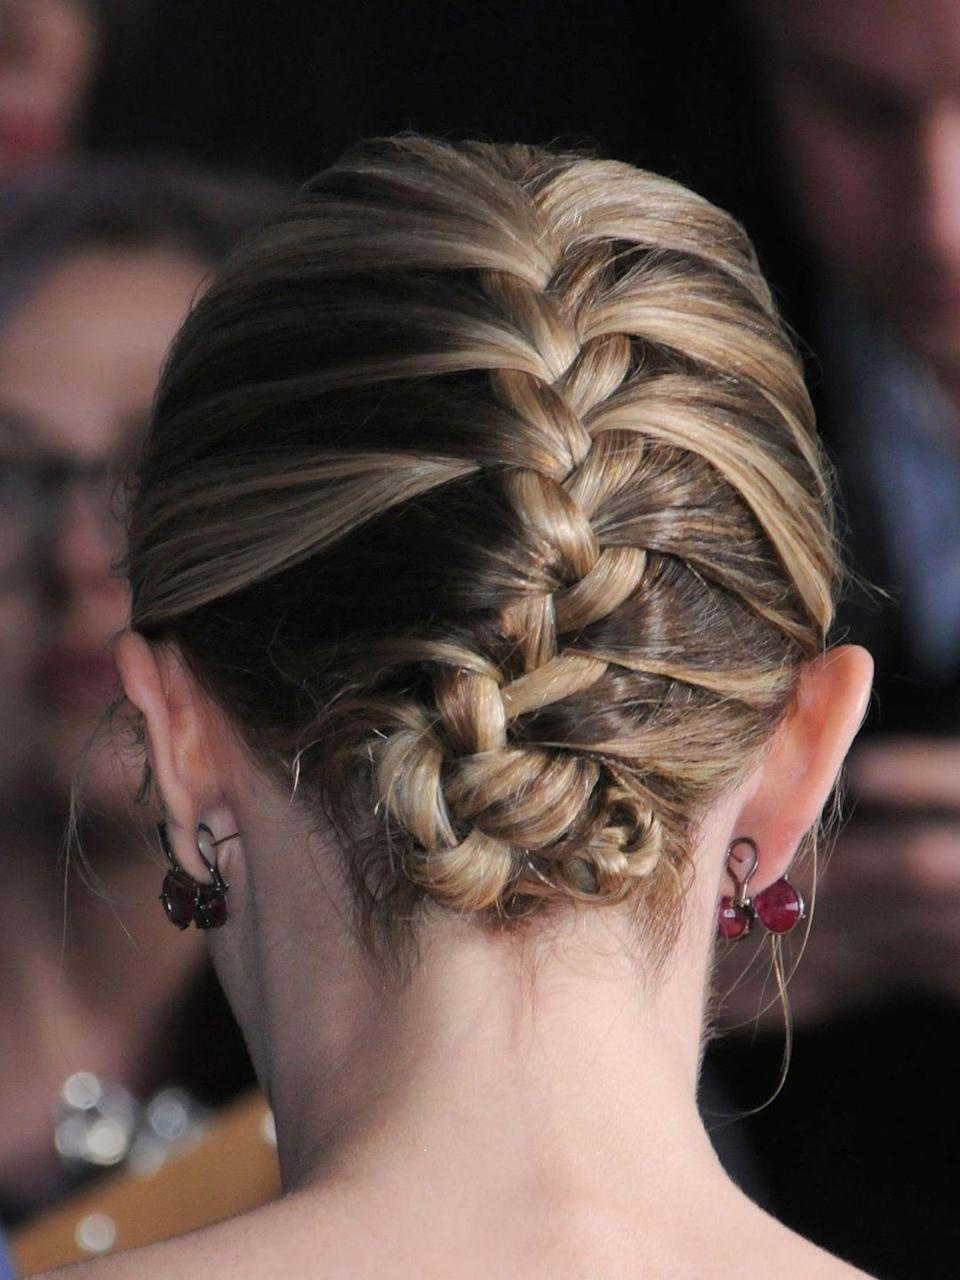 <p>Give a classic French plait a 2018 update by twisting it into a chic updo a la Emily Blunt.</p>